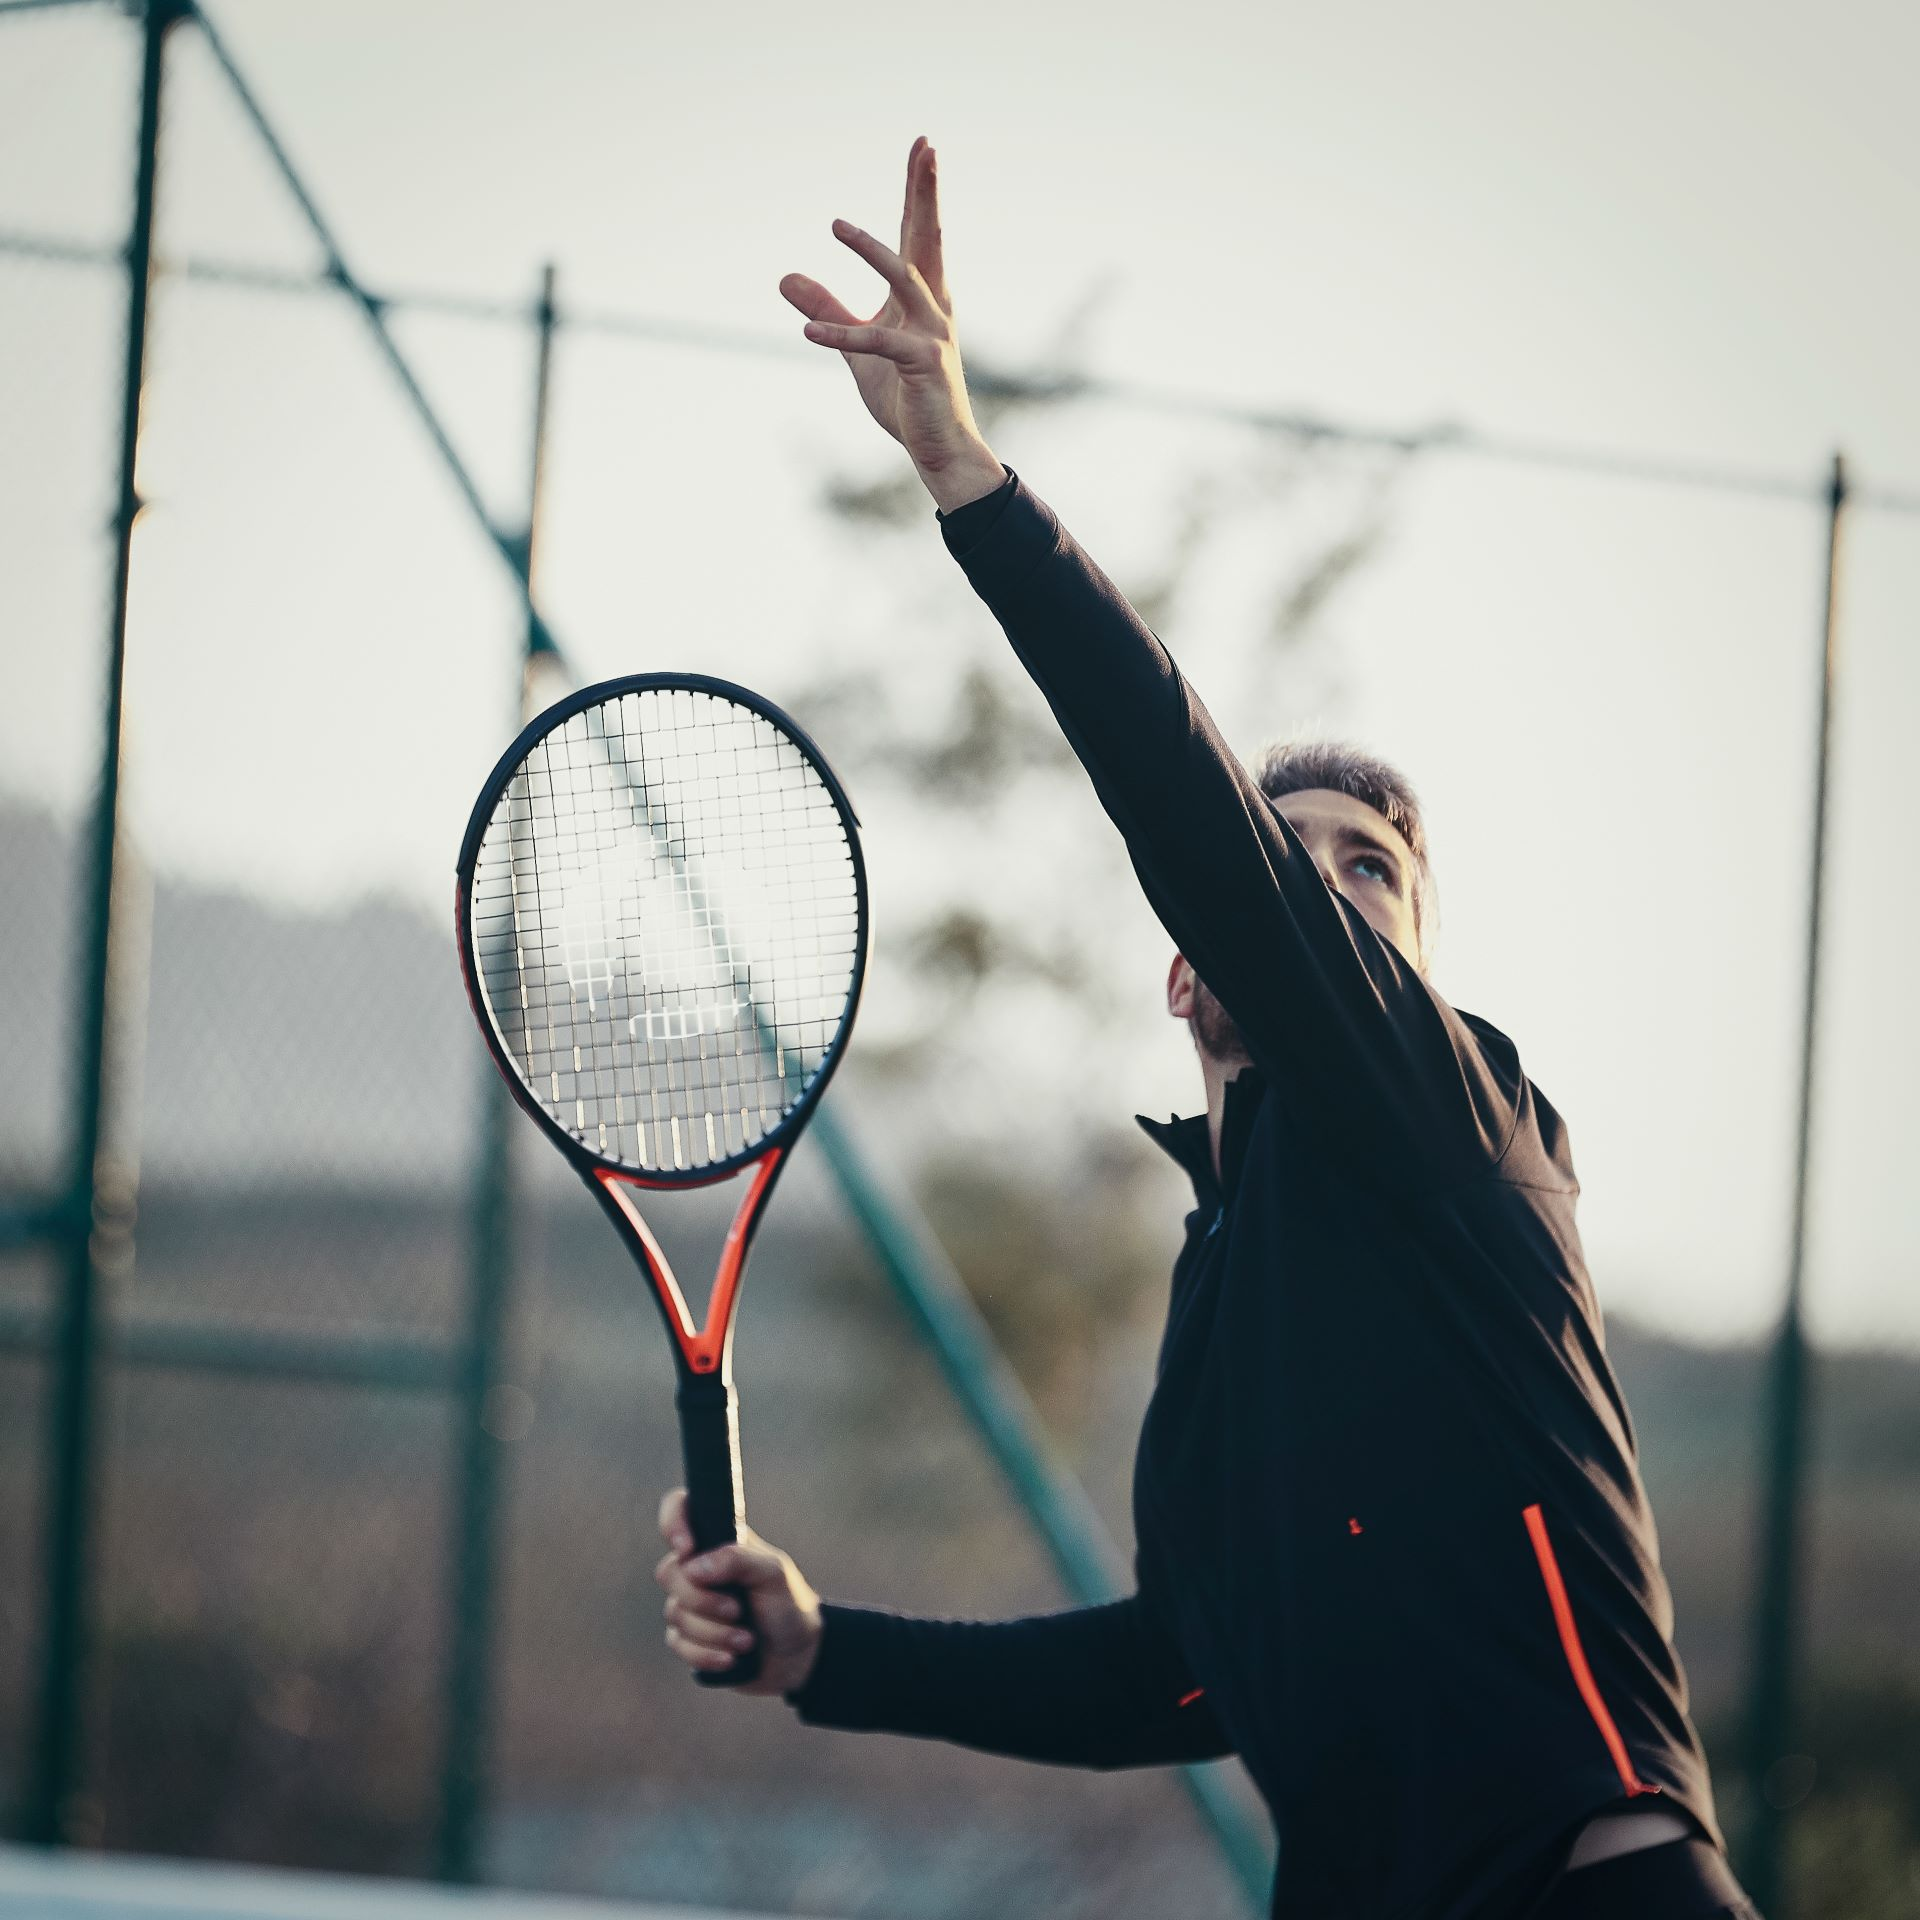 How To Master The Tennis Smash